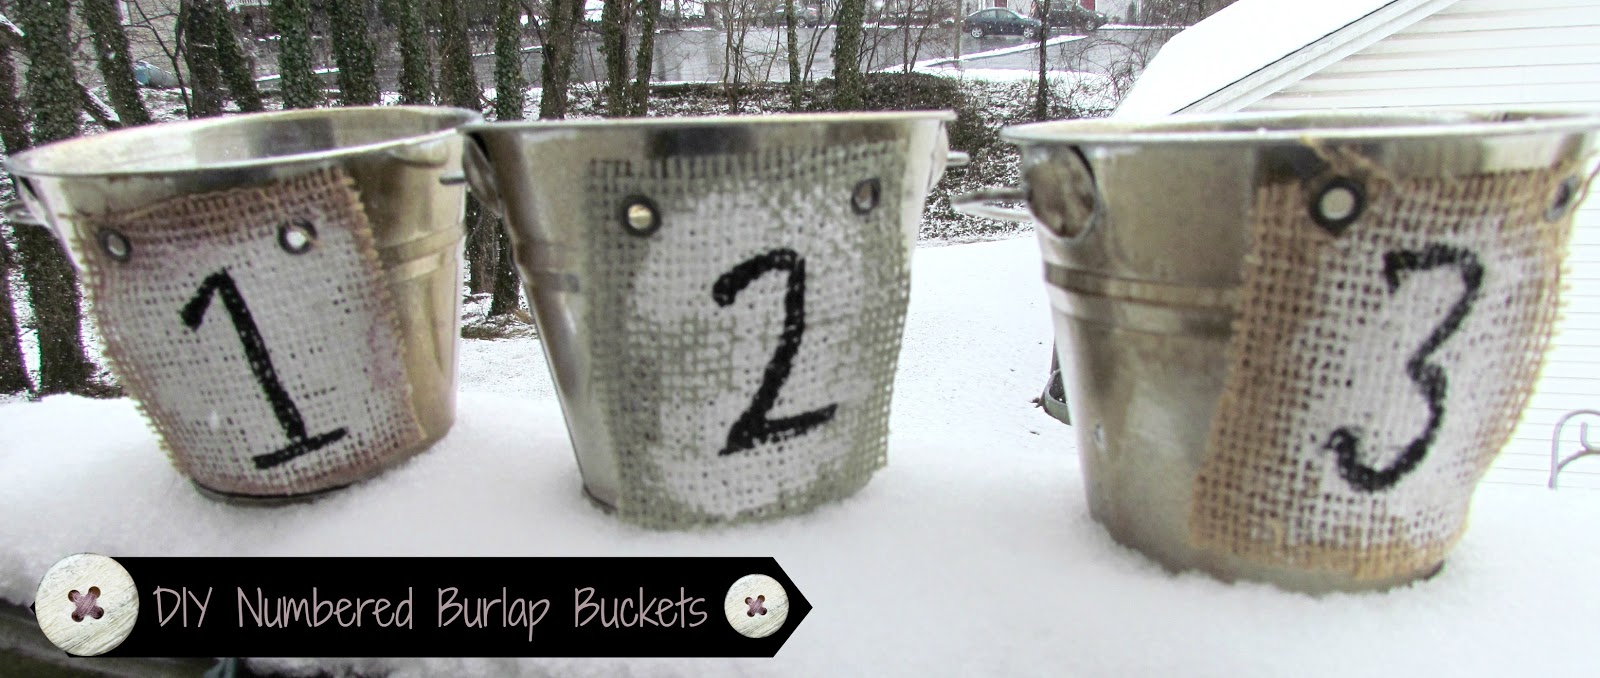 DIY Numbered Burlap Buckets